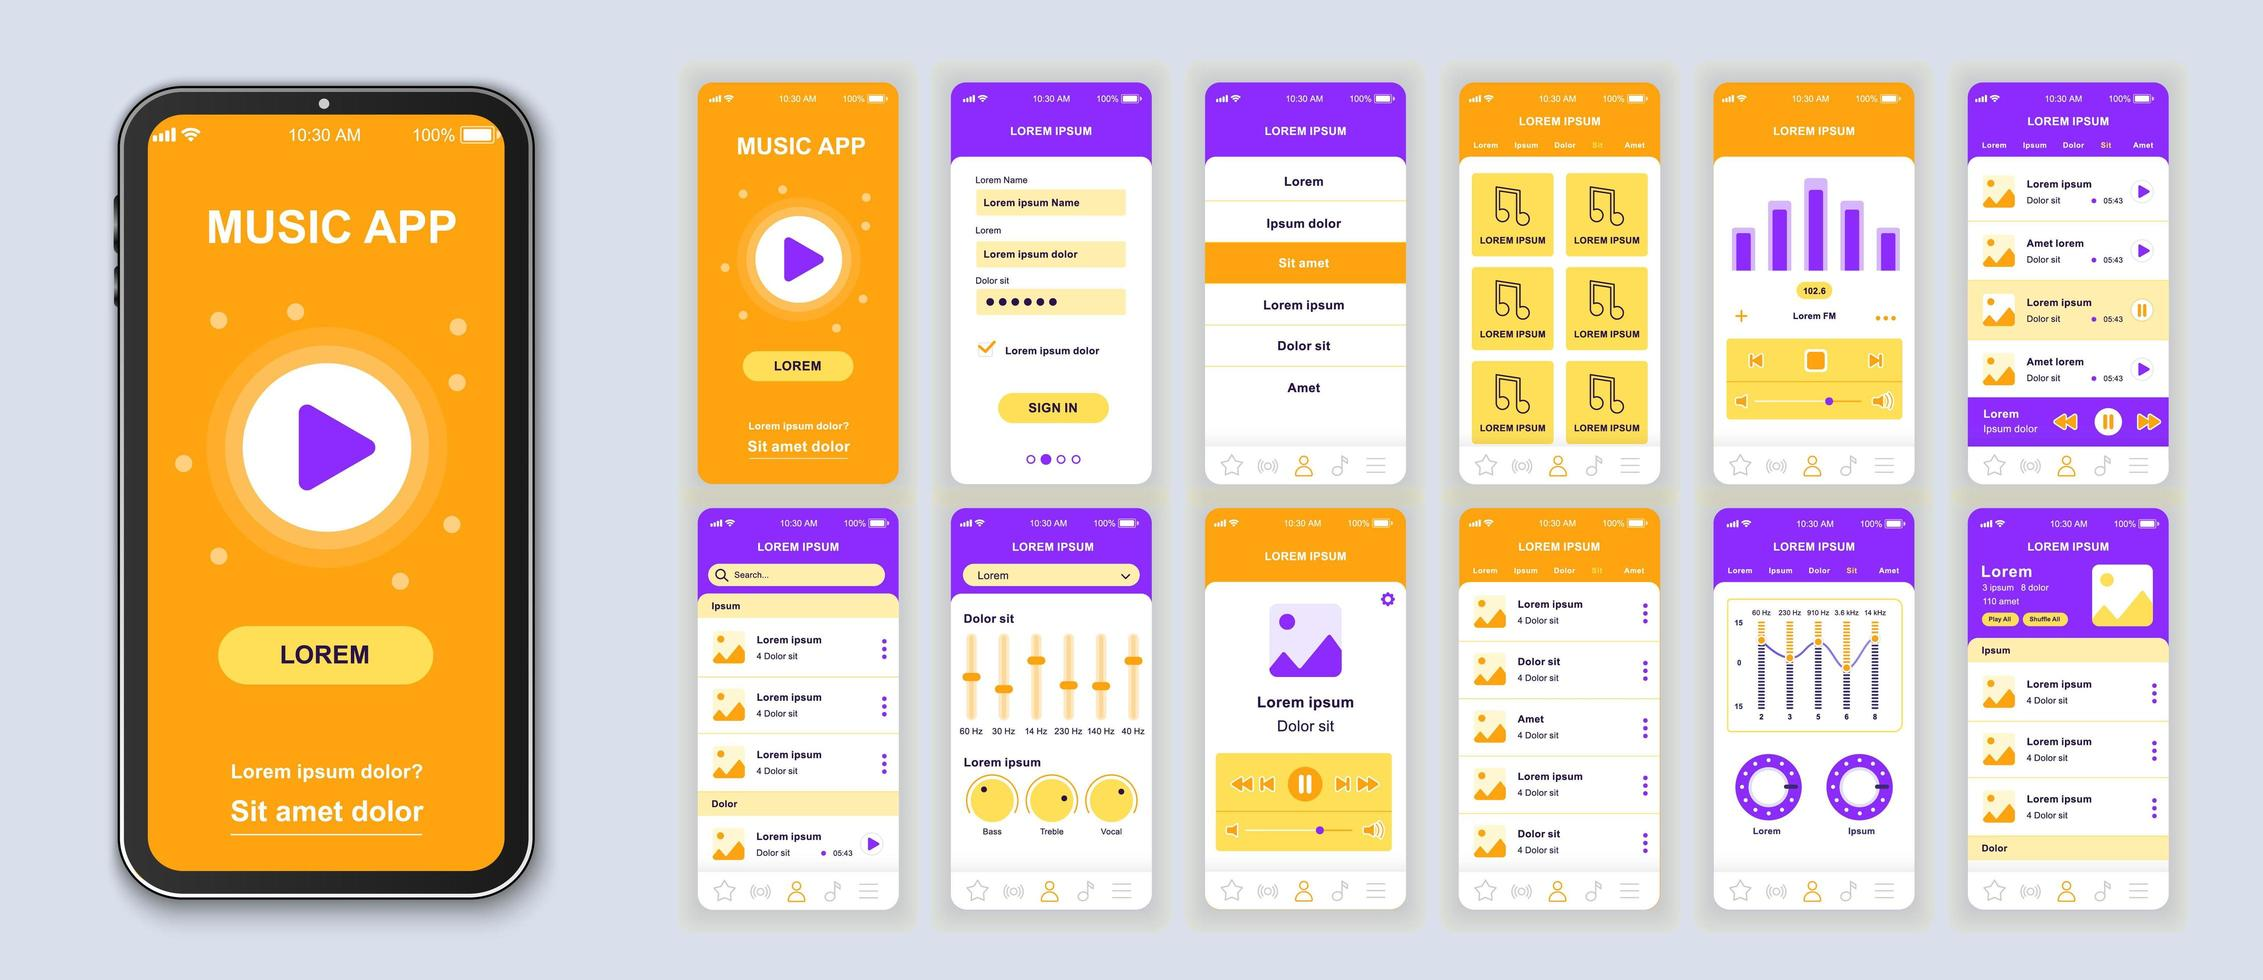 conception d'interface d'application mobile ui musique orange et violette vecteur